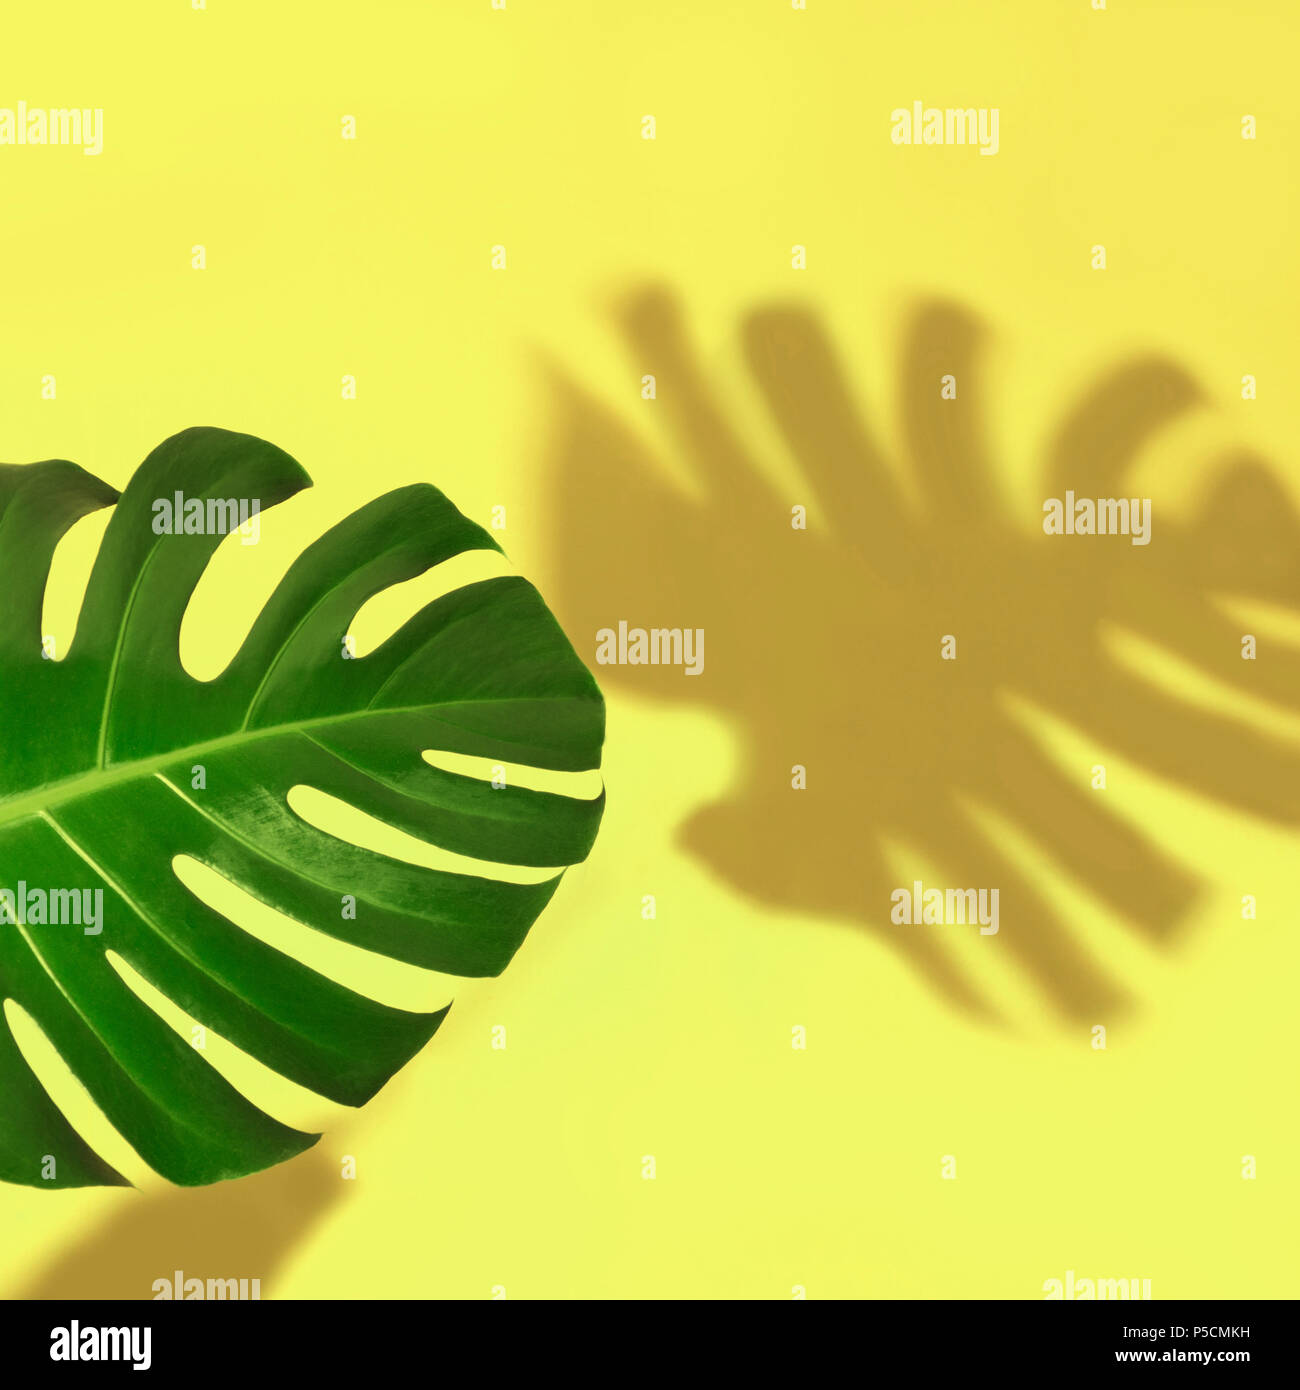 Single leaf of Monstera plant on yellow background. Isolated with copy space. - Stock Image